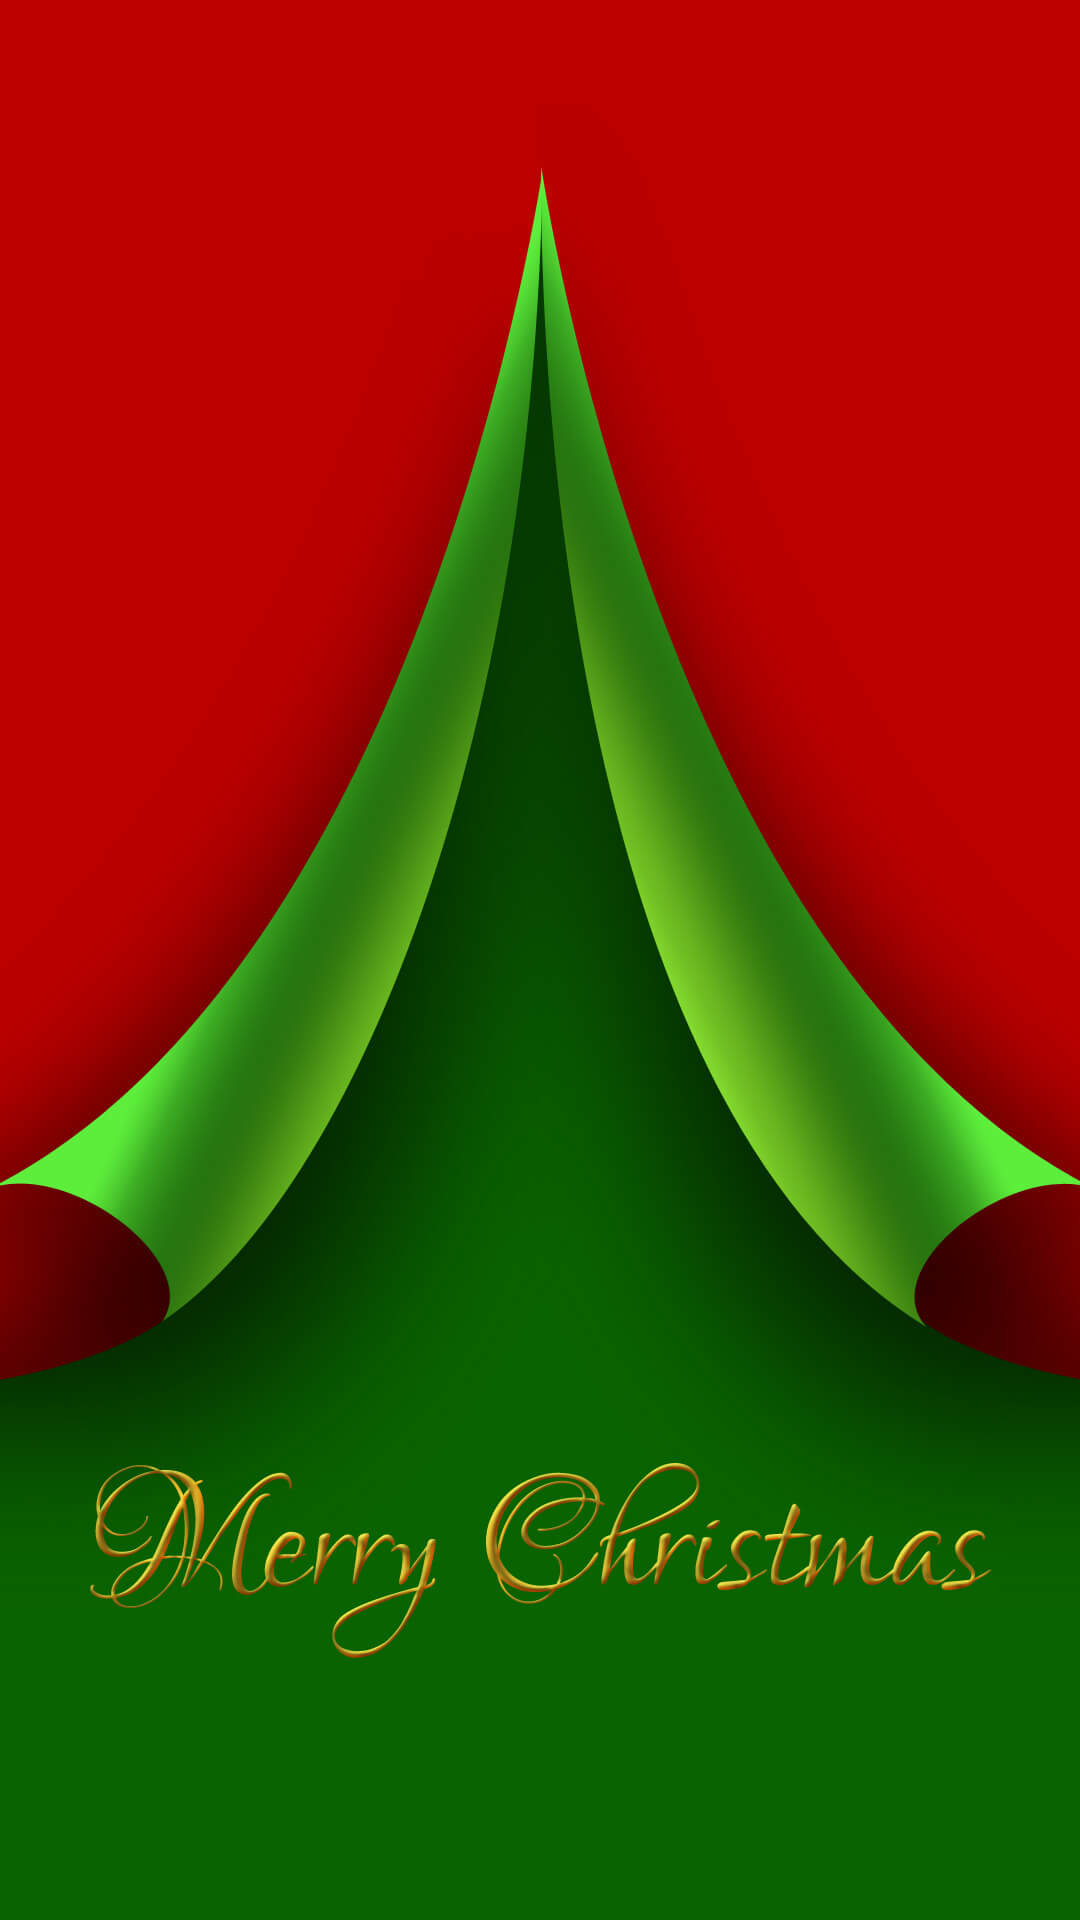 Merry christmas iphone wallpaper merry christmas voltagebd Choice Image